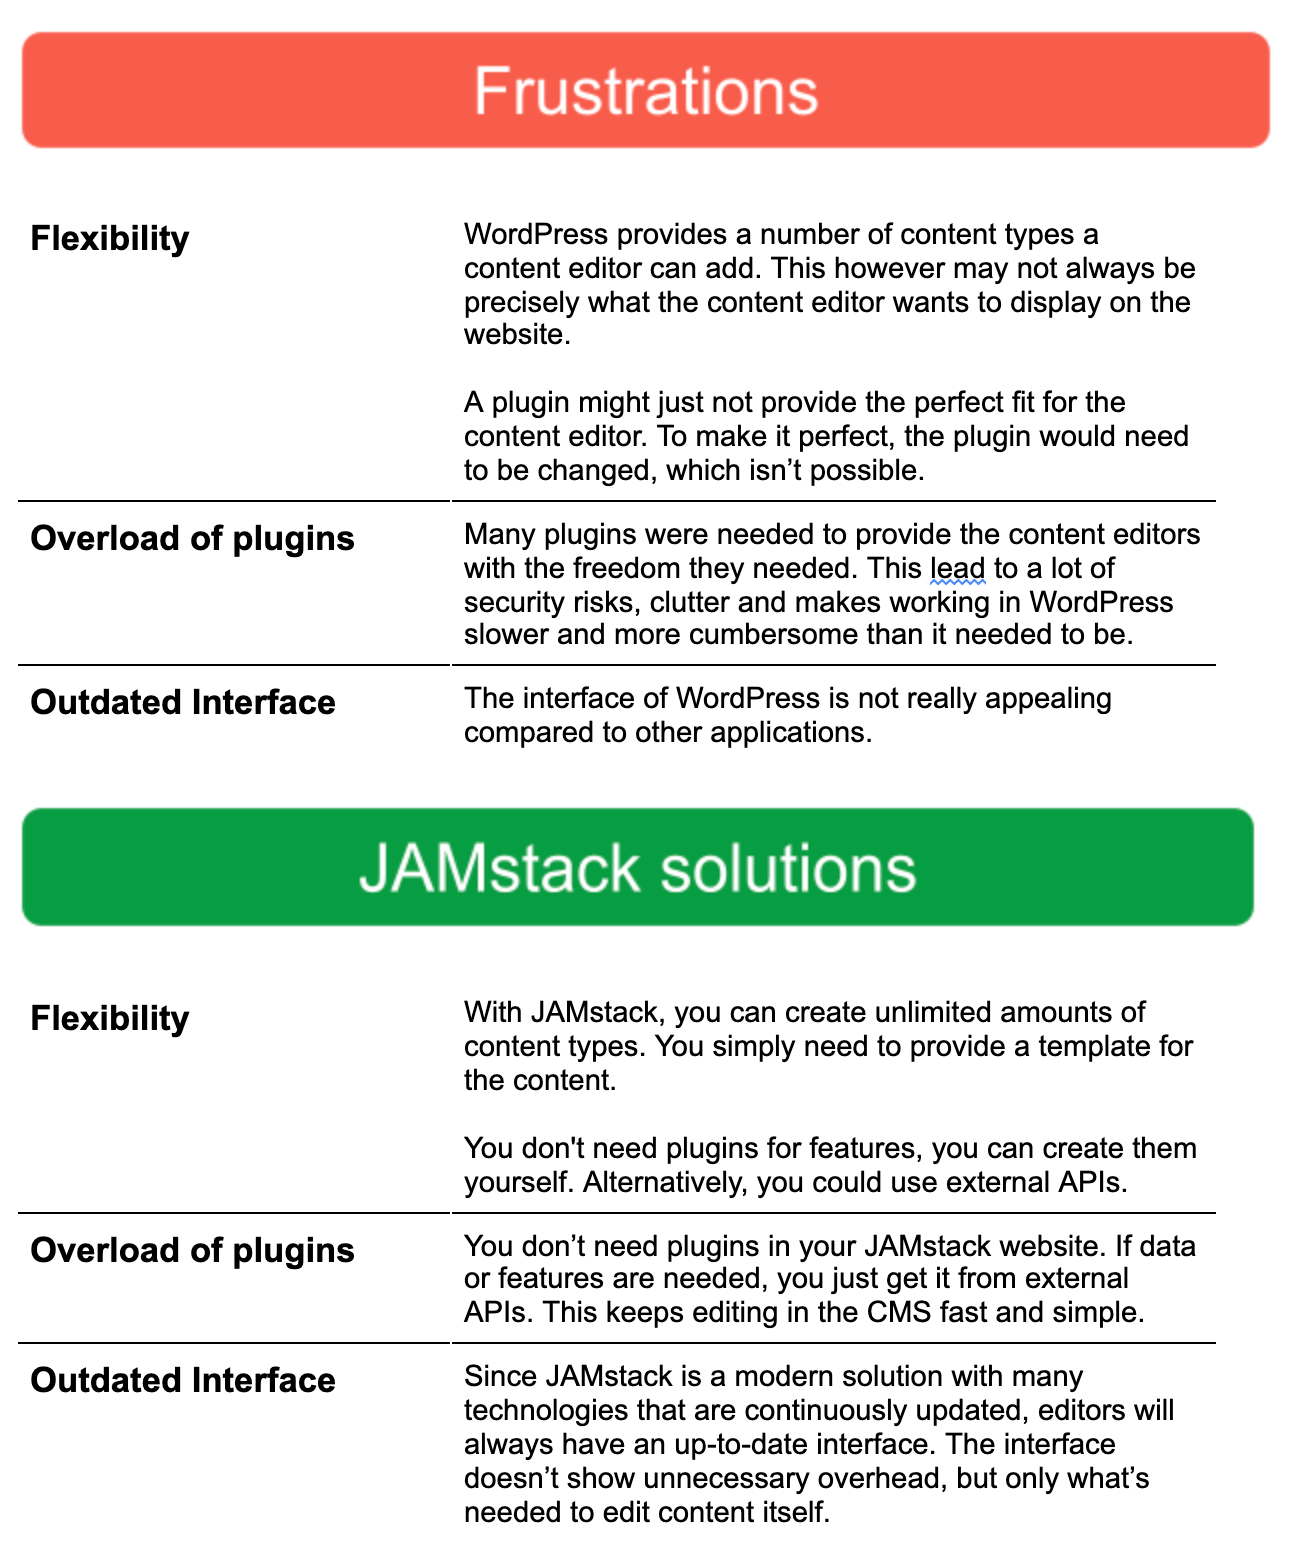 Frustrations WordPress and JAMstack solutions